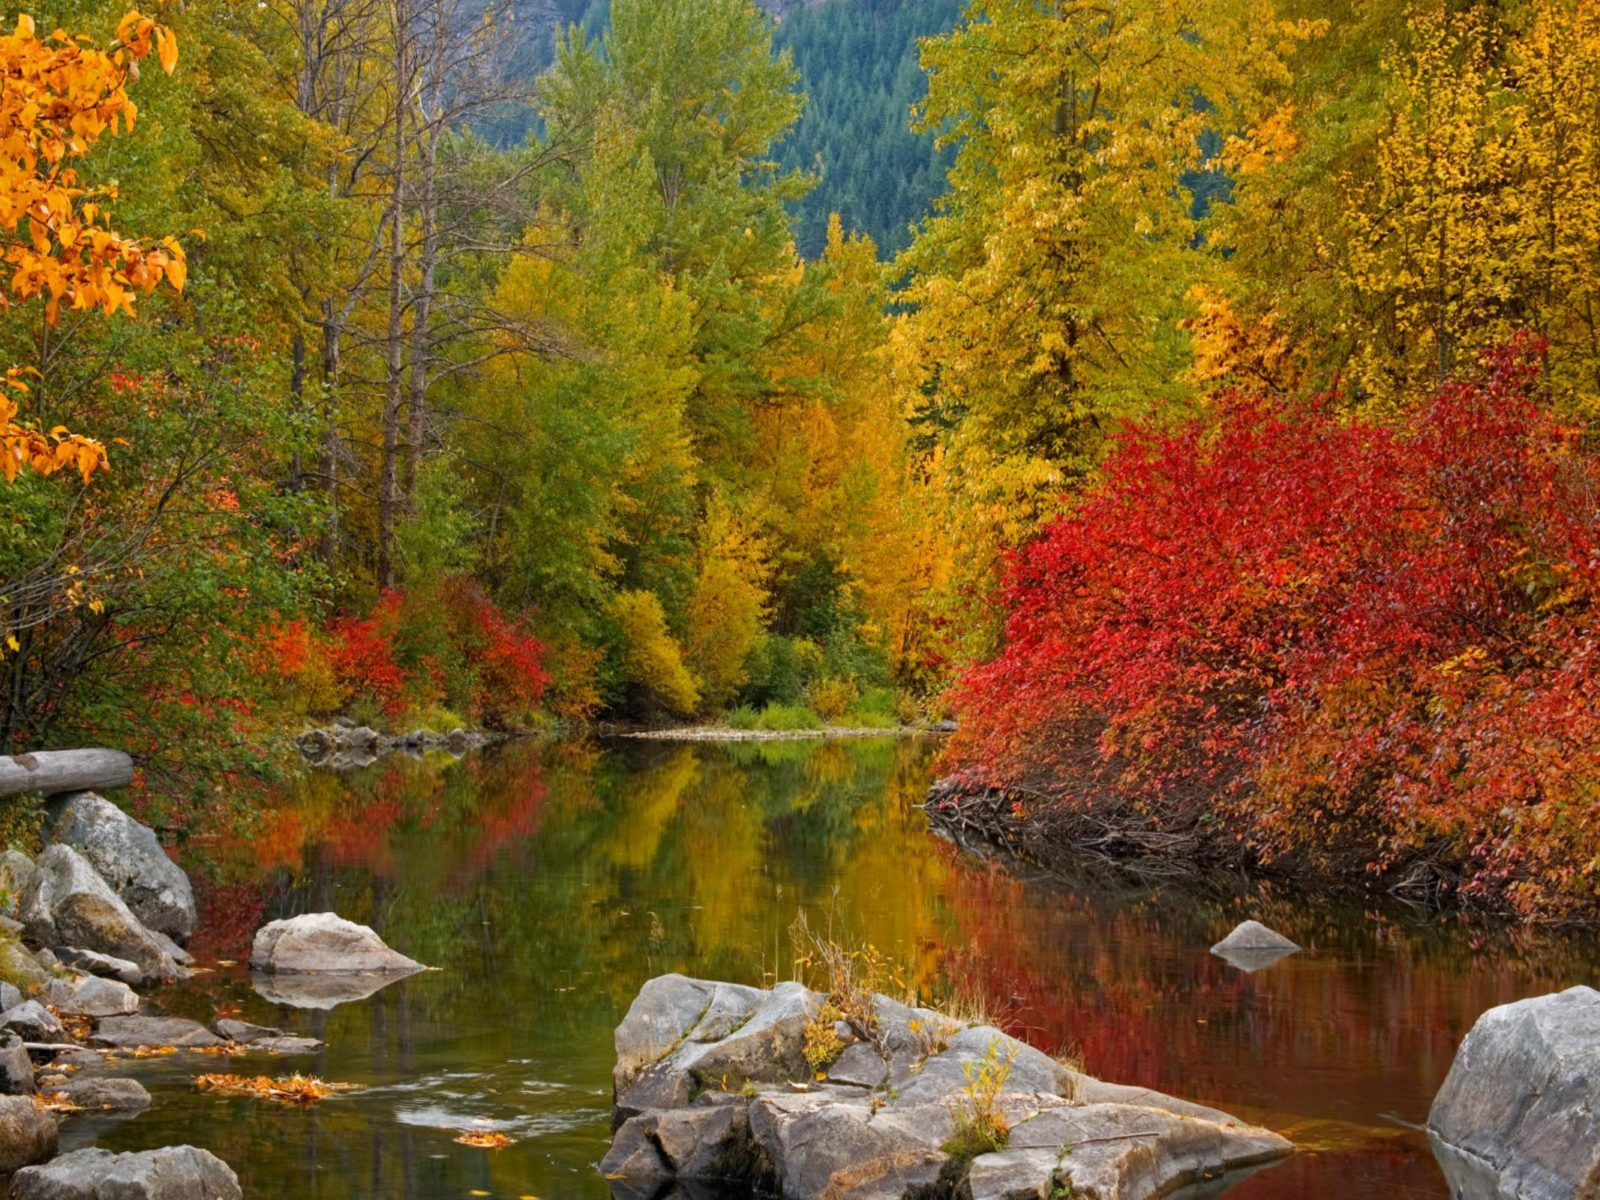 Fall Mountains Iphone Wallpaper Fall Awesome Forest River Water Widescreen 2560x1600 Hd